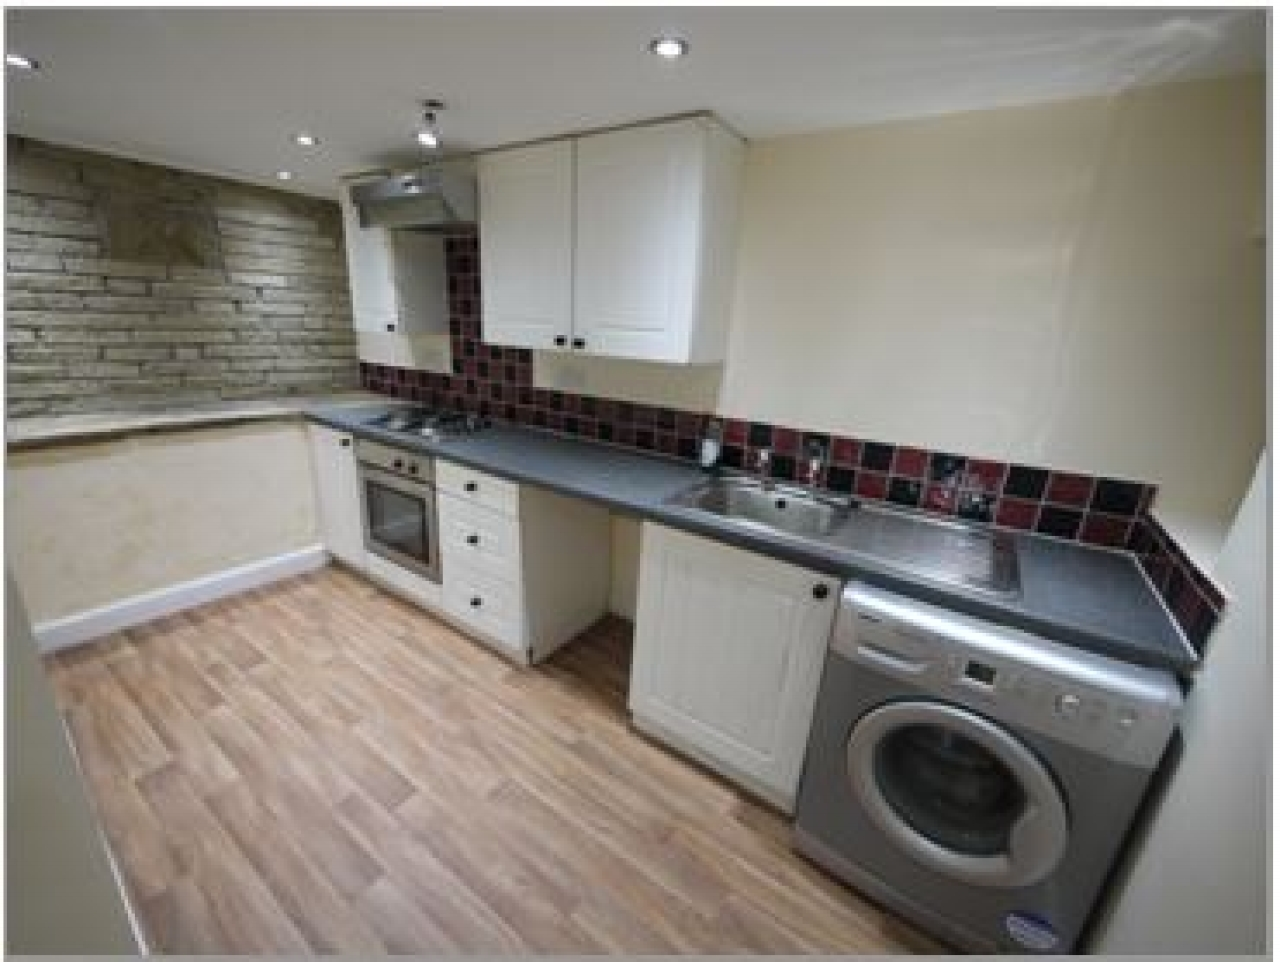 2 bedroom barn conversion house Let in Hudderfield - Photograph 3.